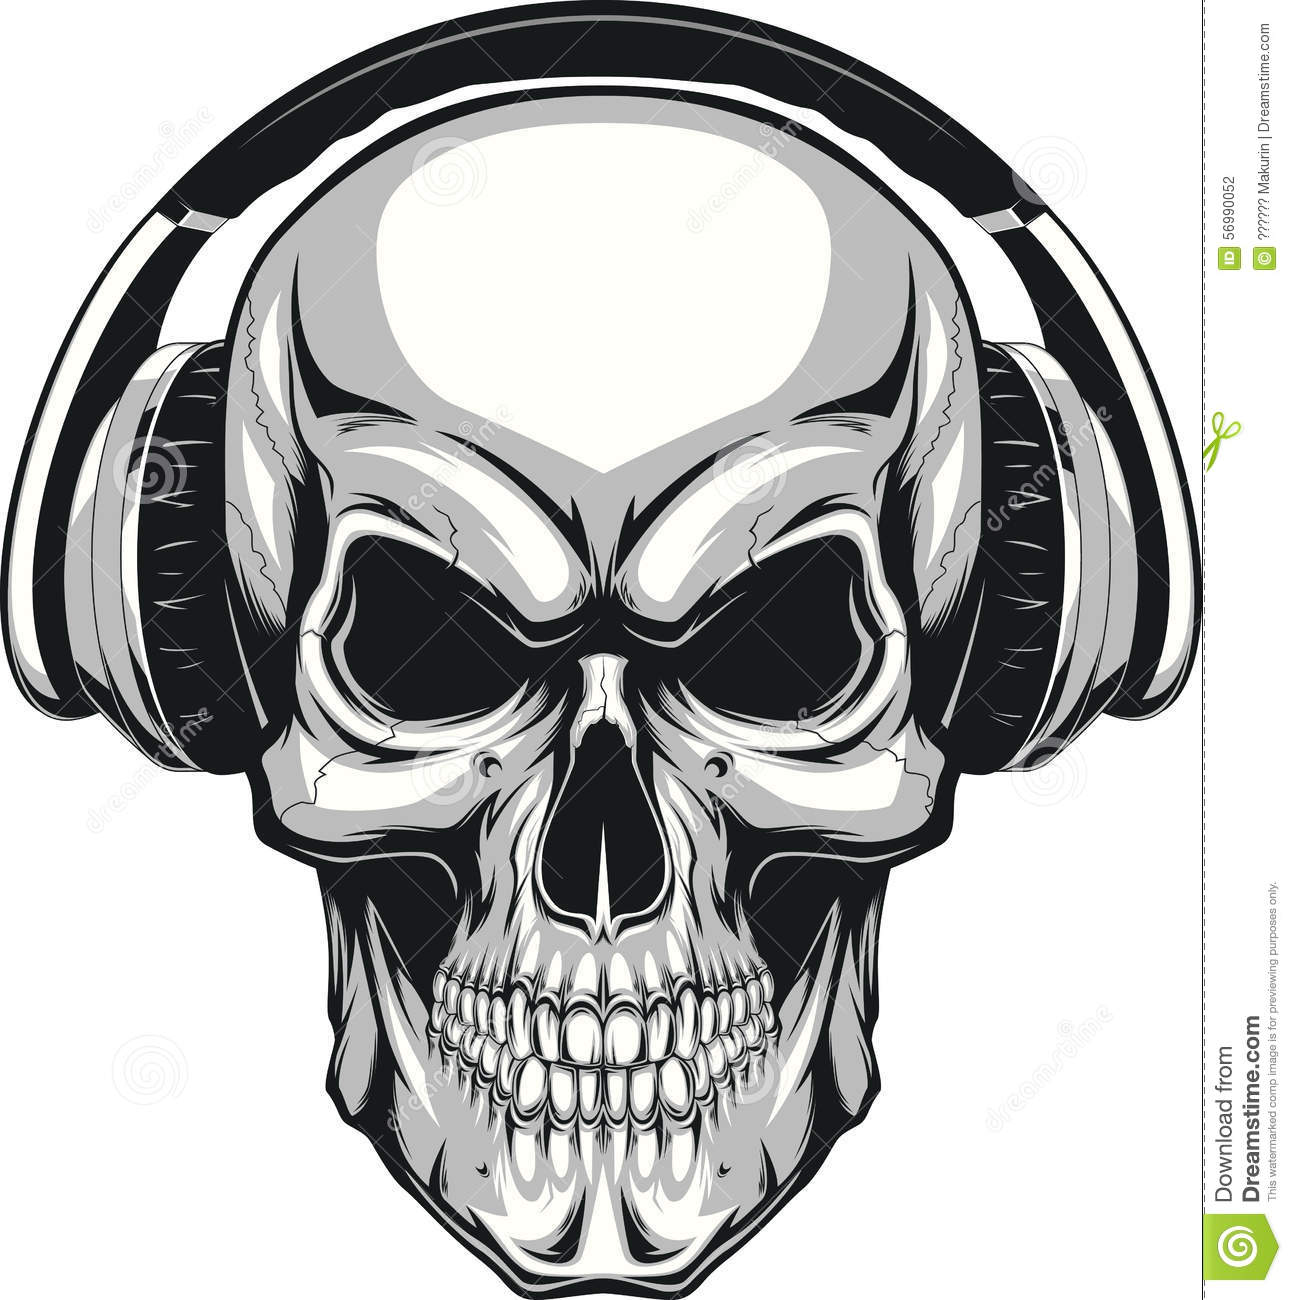 Headphones Skeleton Stock Illustrations 527 Headphones Skeleton Stock Illustrations Vectors Clipart Dreamstime